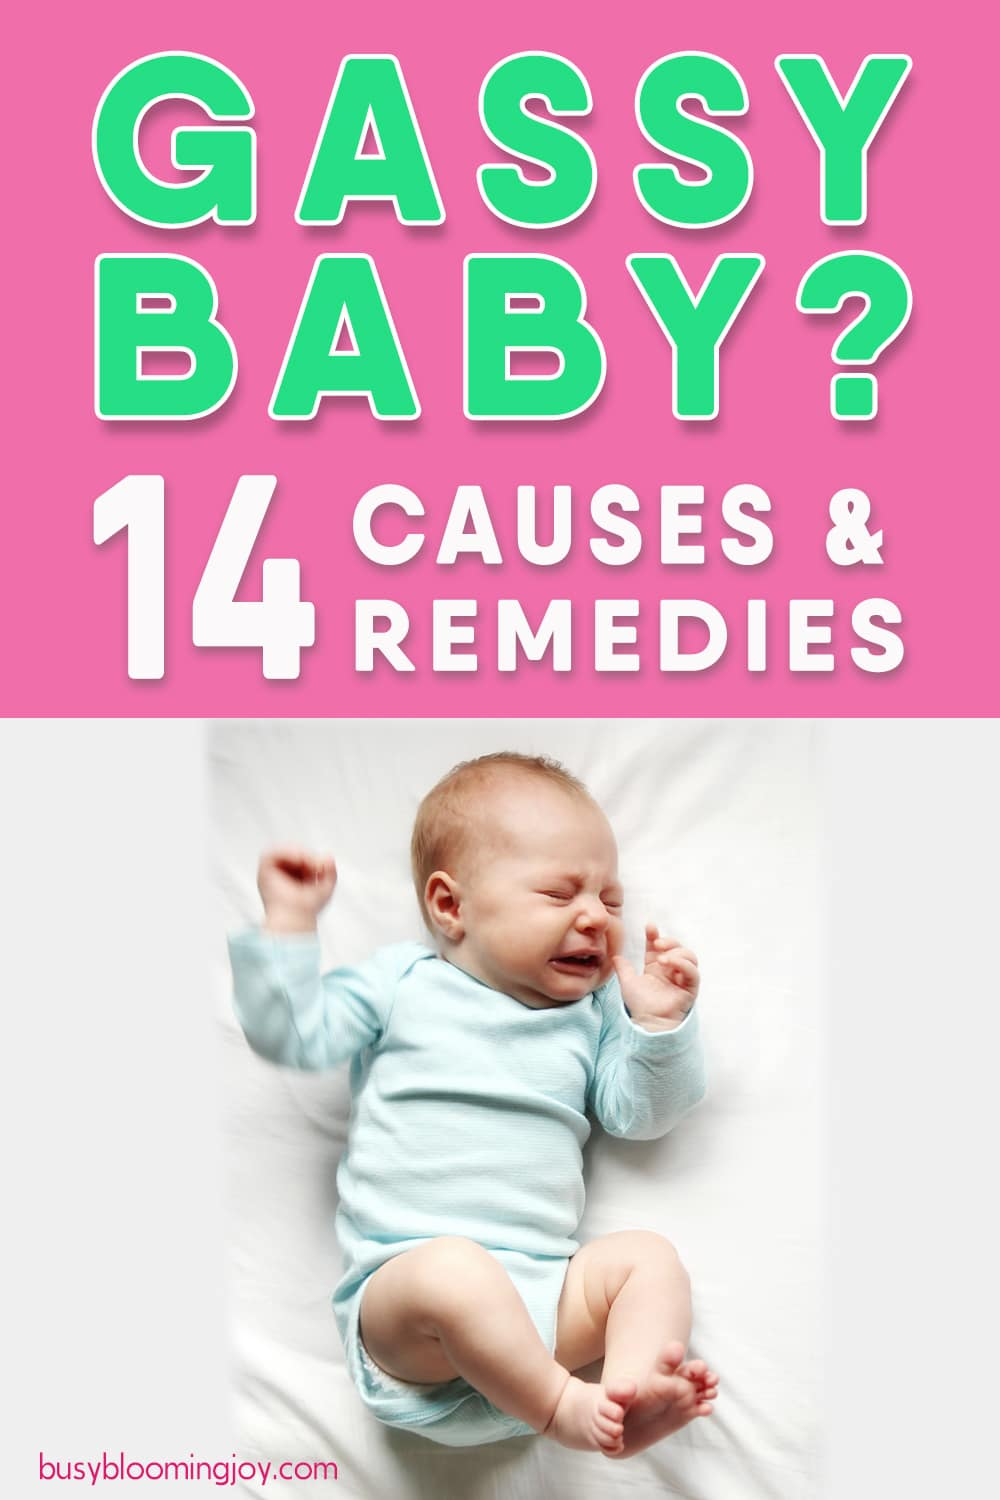 Newborns are gassy - it may even make your baby cry inconsolably – colic – and scream out in pain. Wondering how to help your gassy newborn? If you're breastfeeding it could be your diet making your newborn gassy, colicky & cause acid reflux. But gas is also common in formula-fed babies. There are lots of causes but some easy remedies plus treatments & products that claim to offer gas relief. Find out how to help your gassy newborn here – causes, remedies, treatments for gas relief.